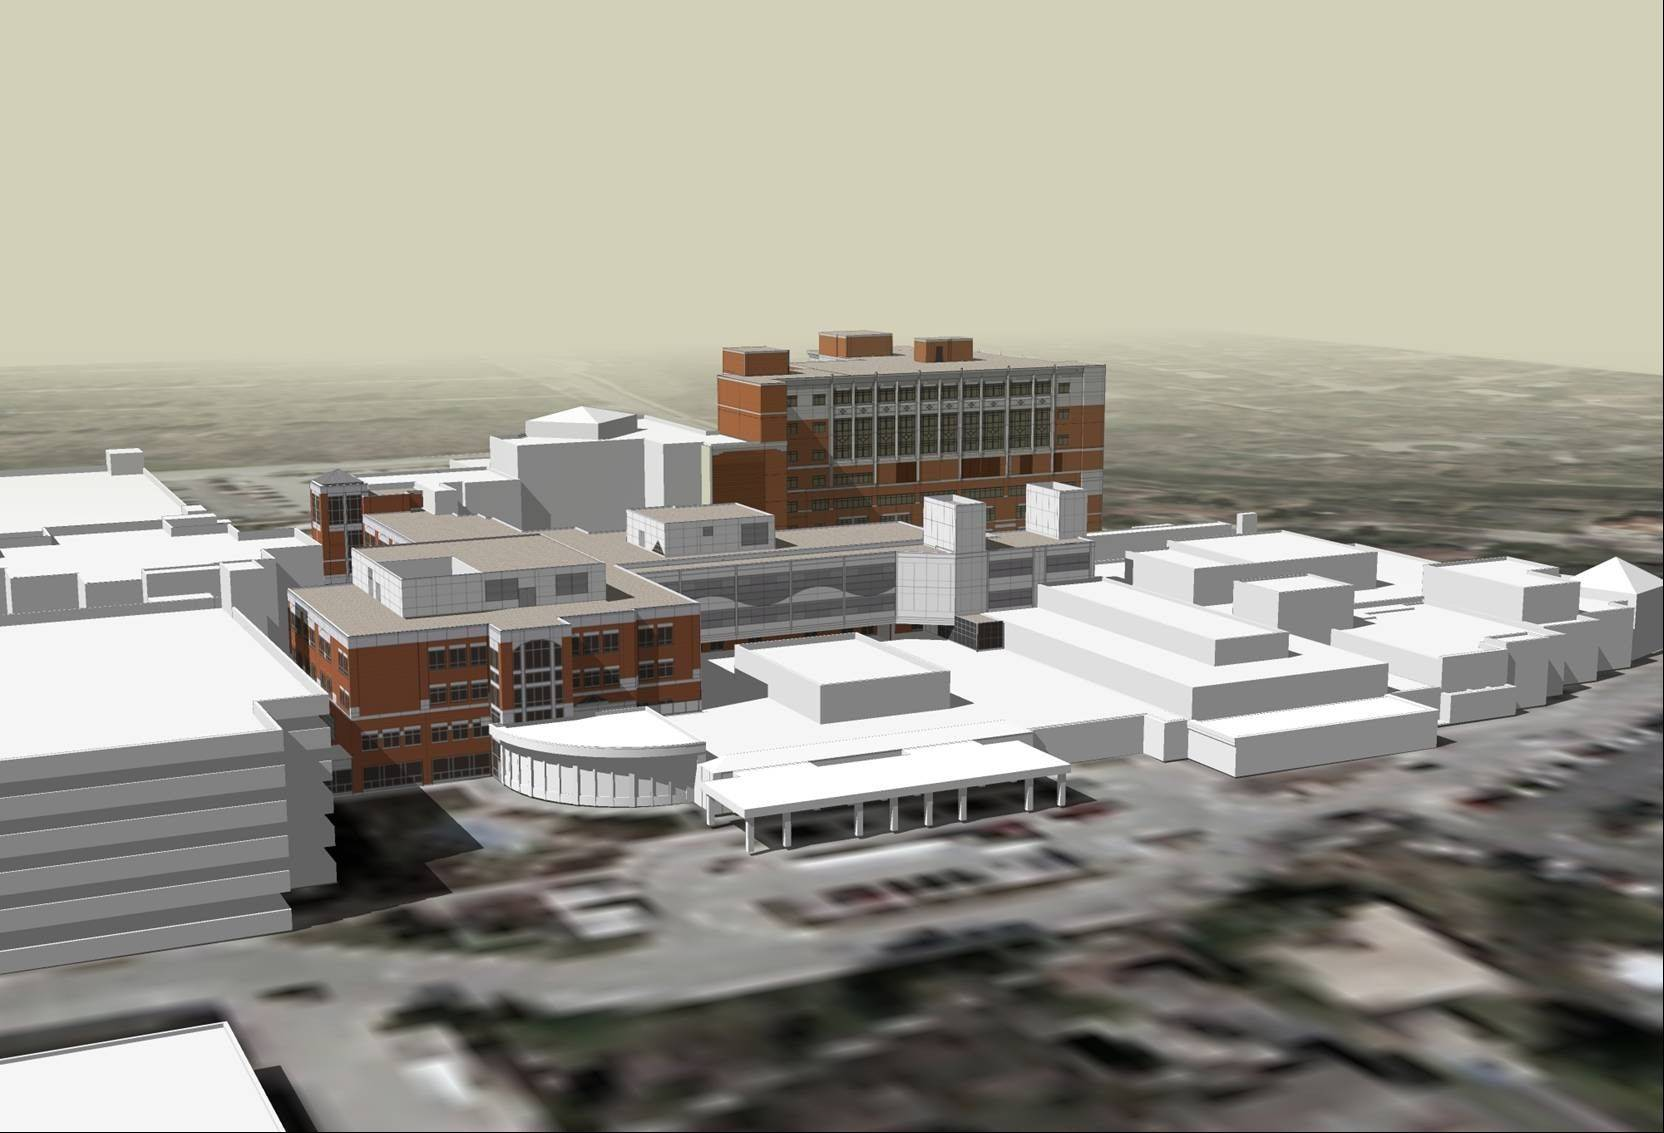 Edward Hospital is seeking permission to add two floors of patient beds to the west building on its Naperville campus.